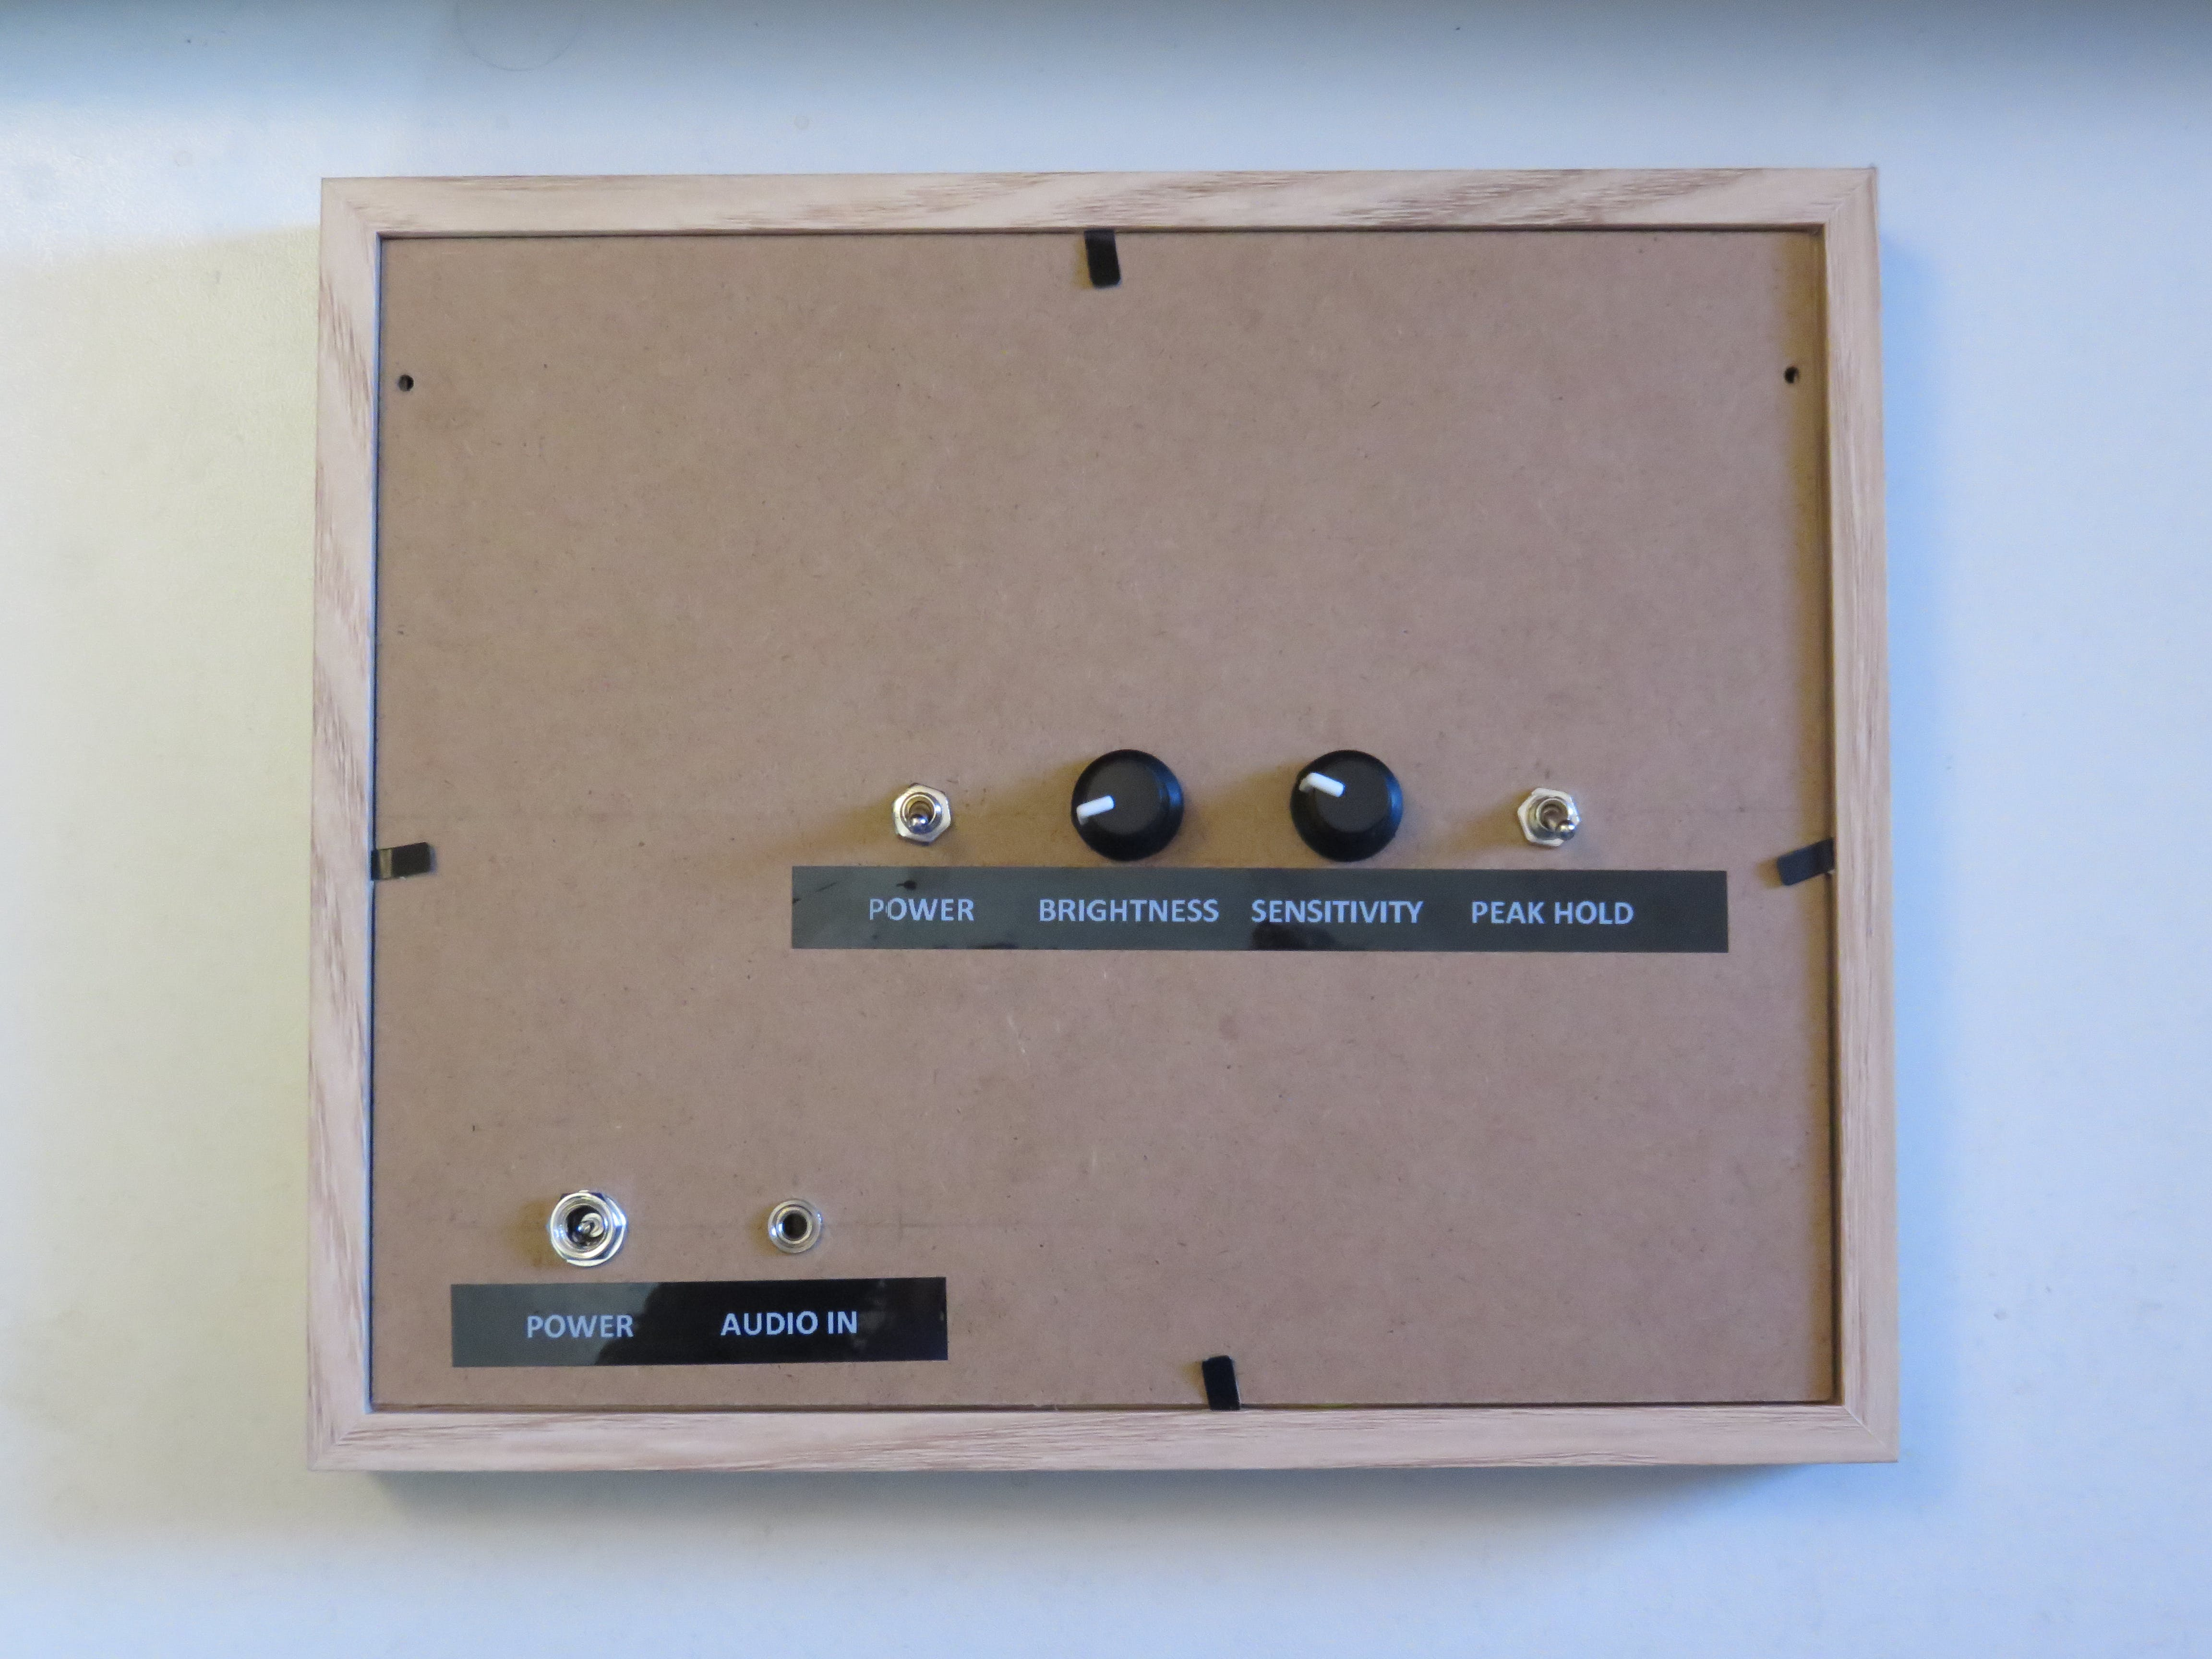 The back of the frame with 2 switches, dials and connectors.